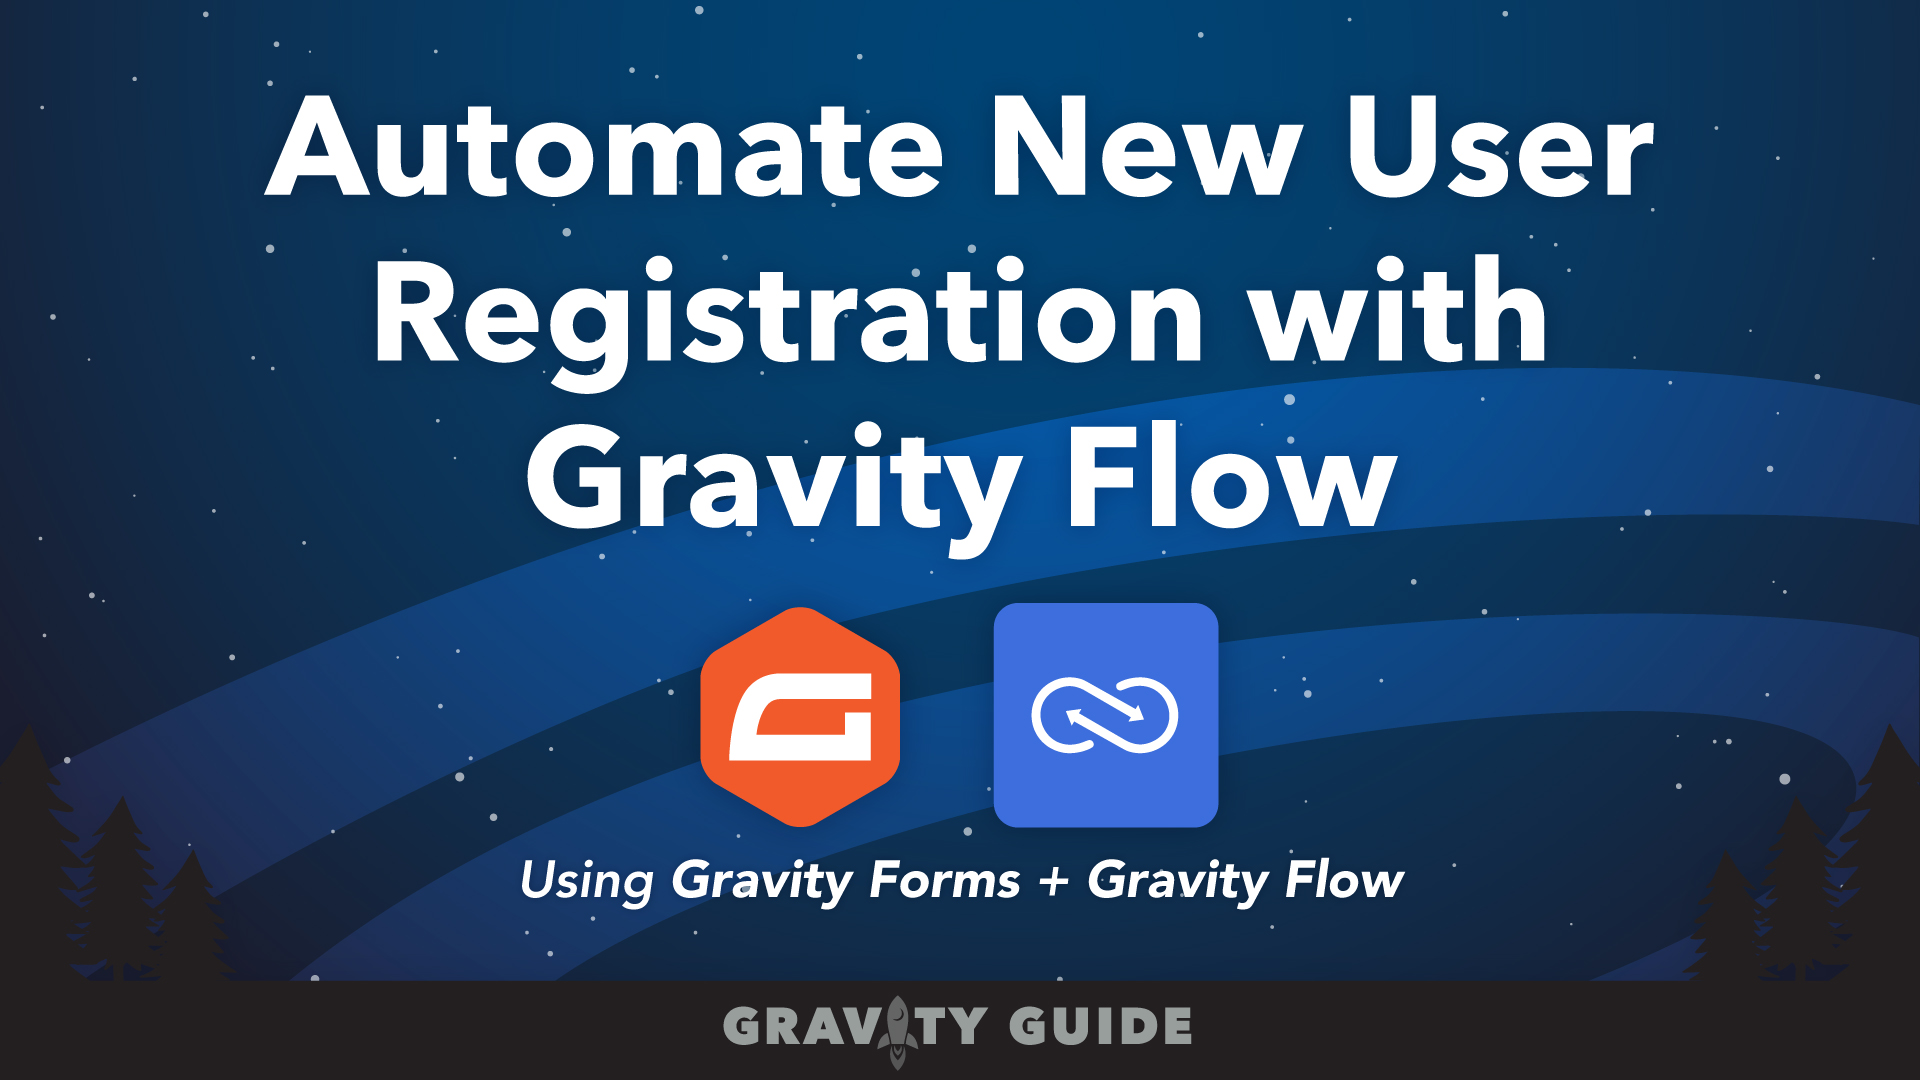 Automate New User Registration with Gravity Flow